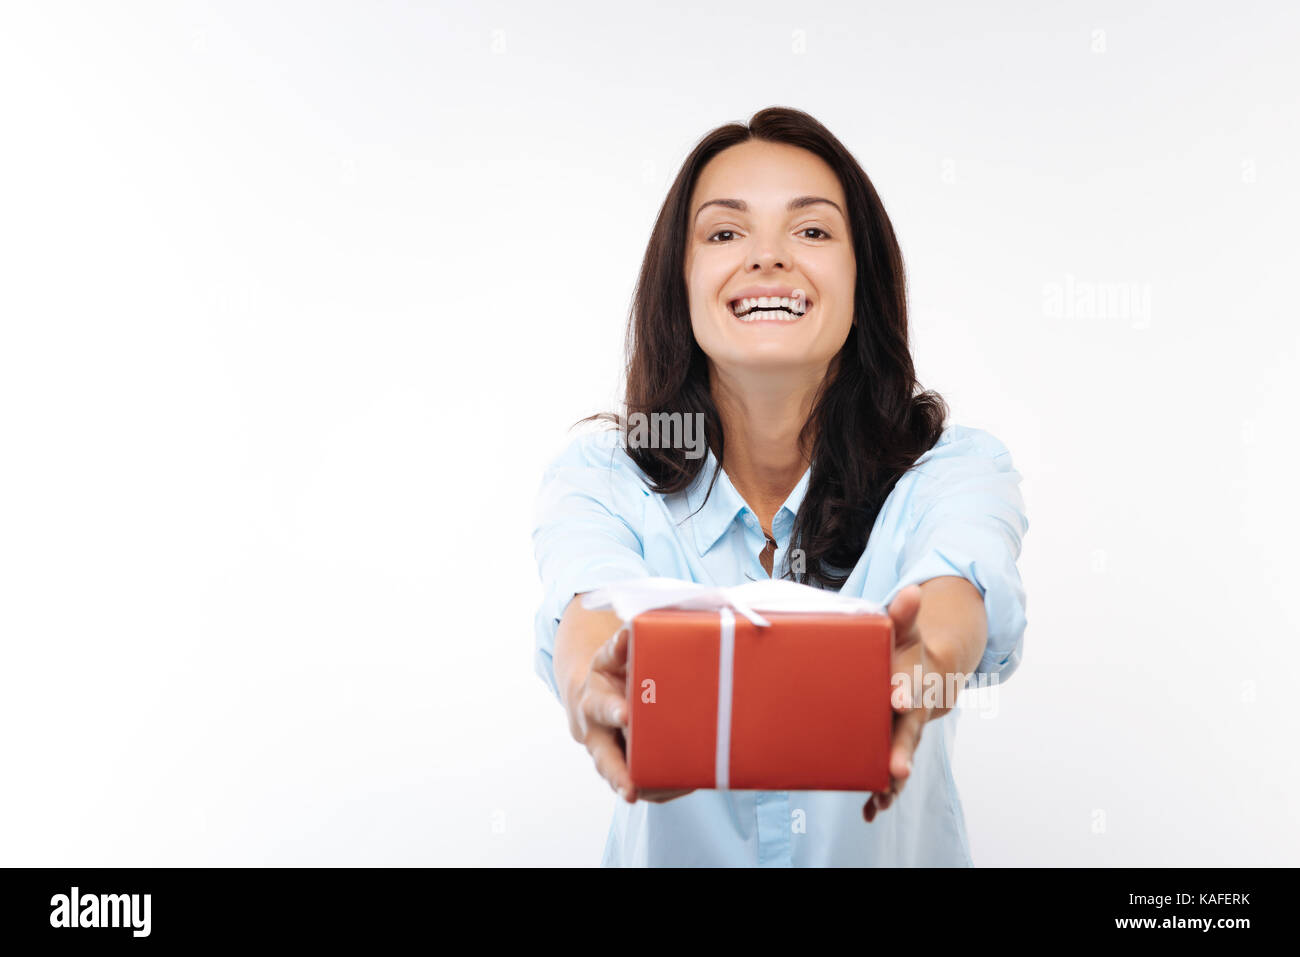 Happy young woman handing a red gift box - Stock Image